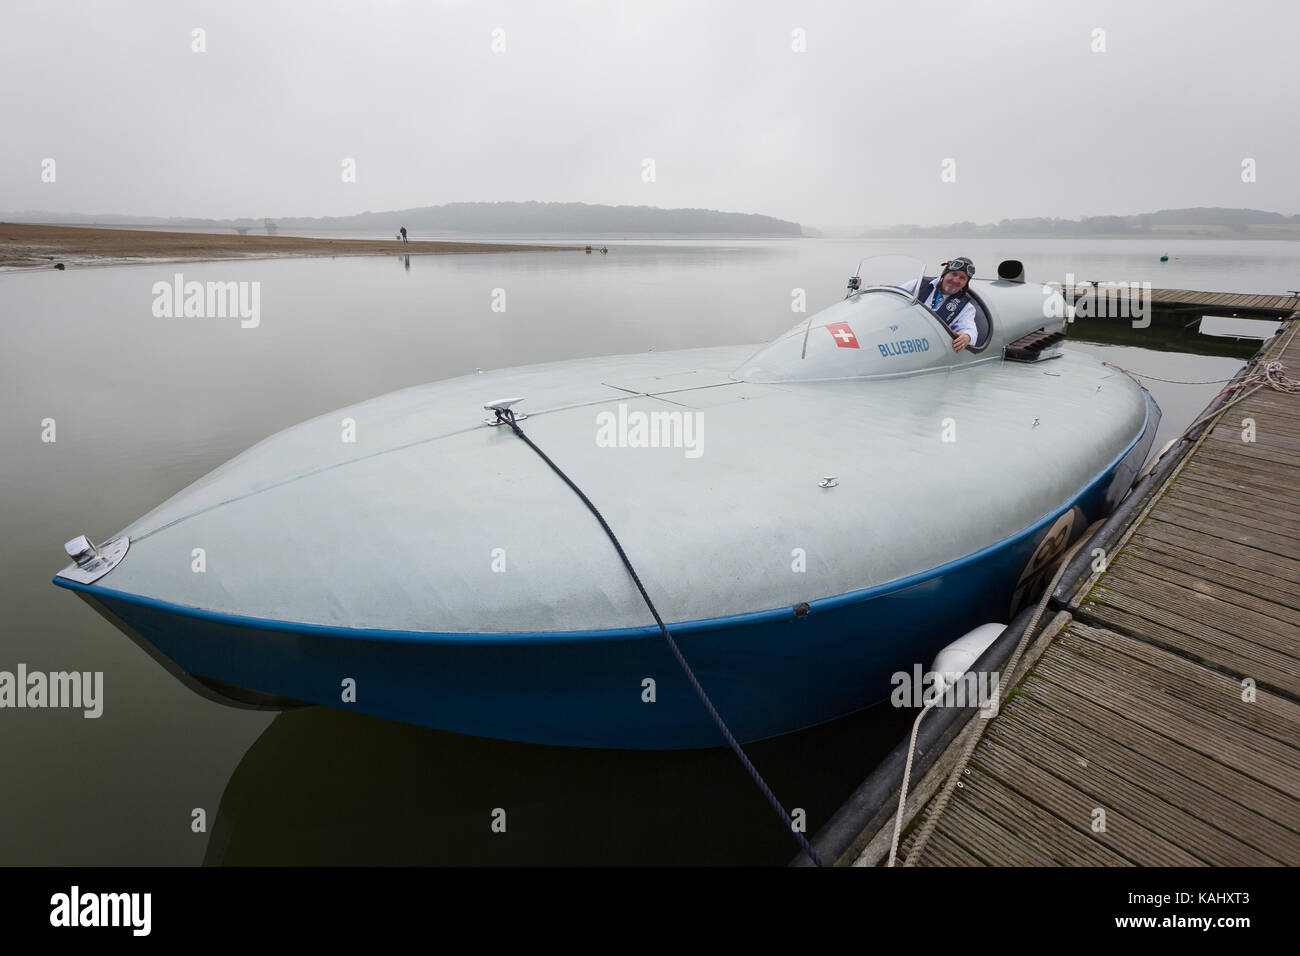 Bewl Water, Kent. 26th September 2017. Following extensive restoration, the hydroplane powerboat Bluebird K3, piloted - Stock Image